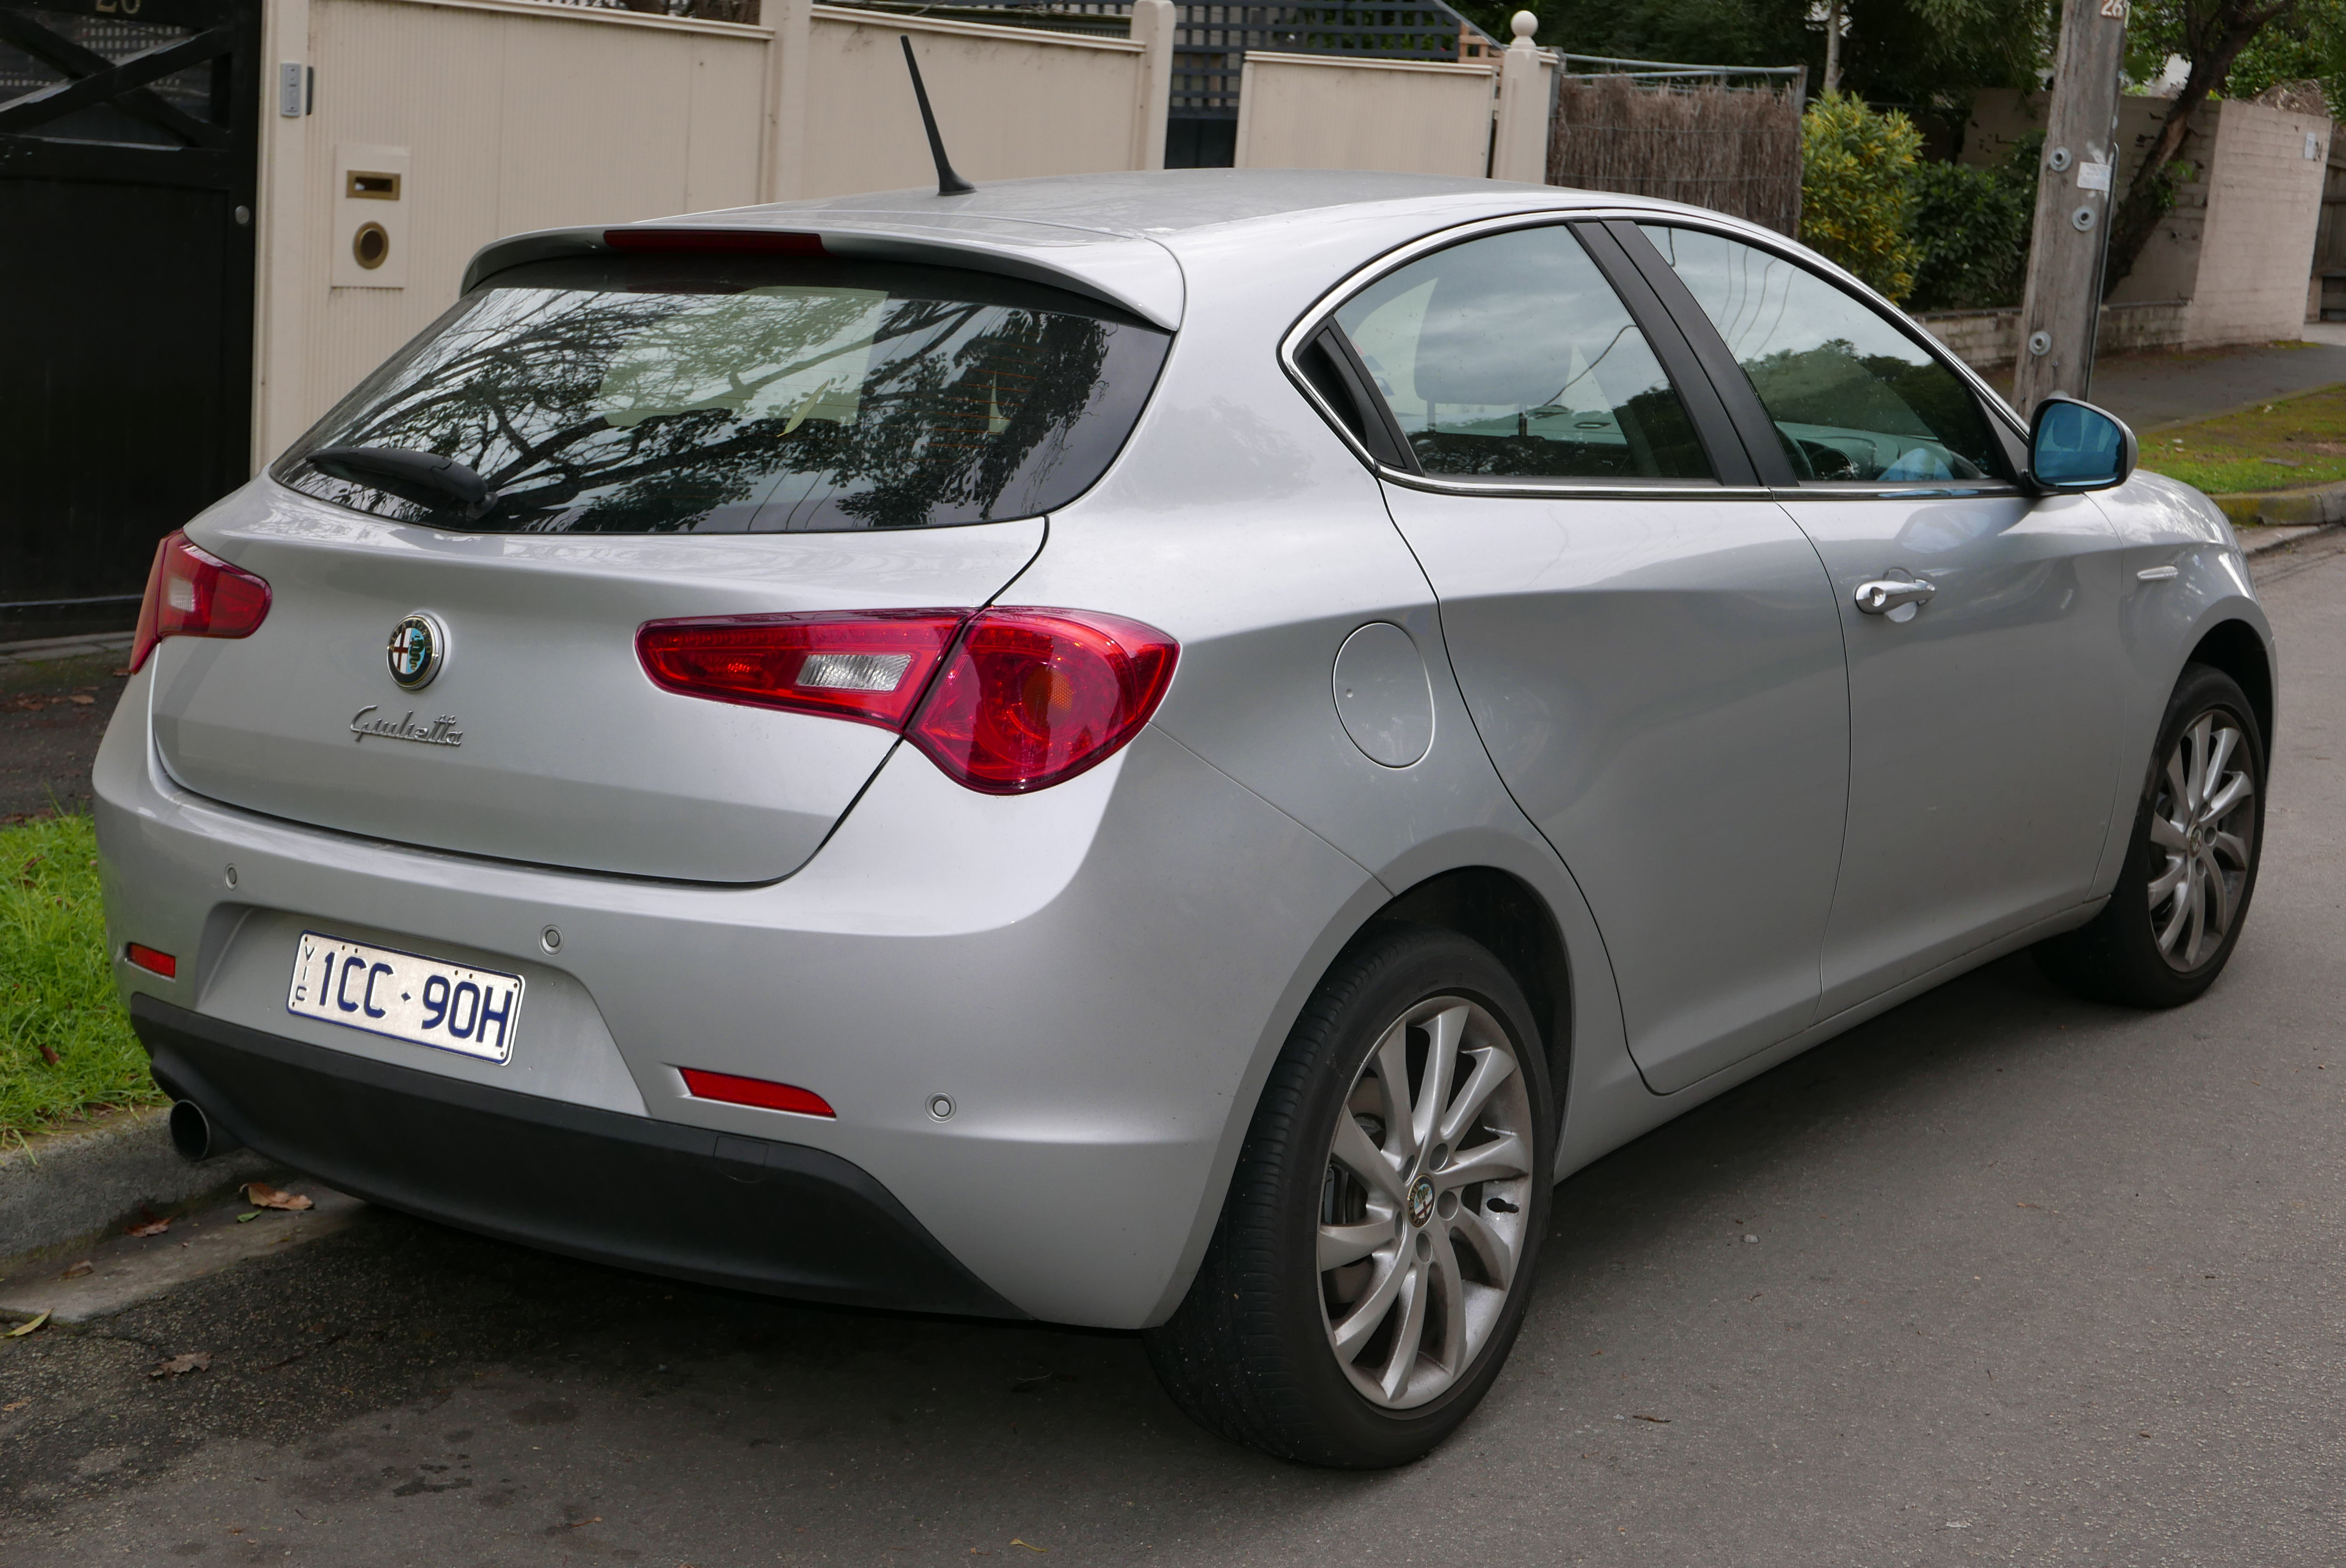 file:2012 alfa romeo giulietta (940 my12) distinctive hatchback